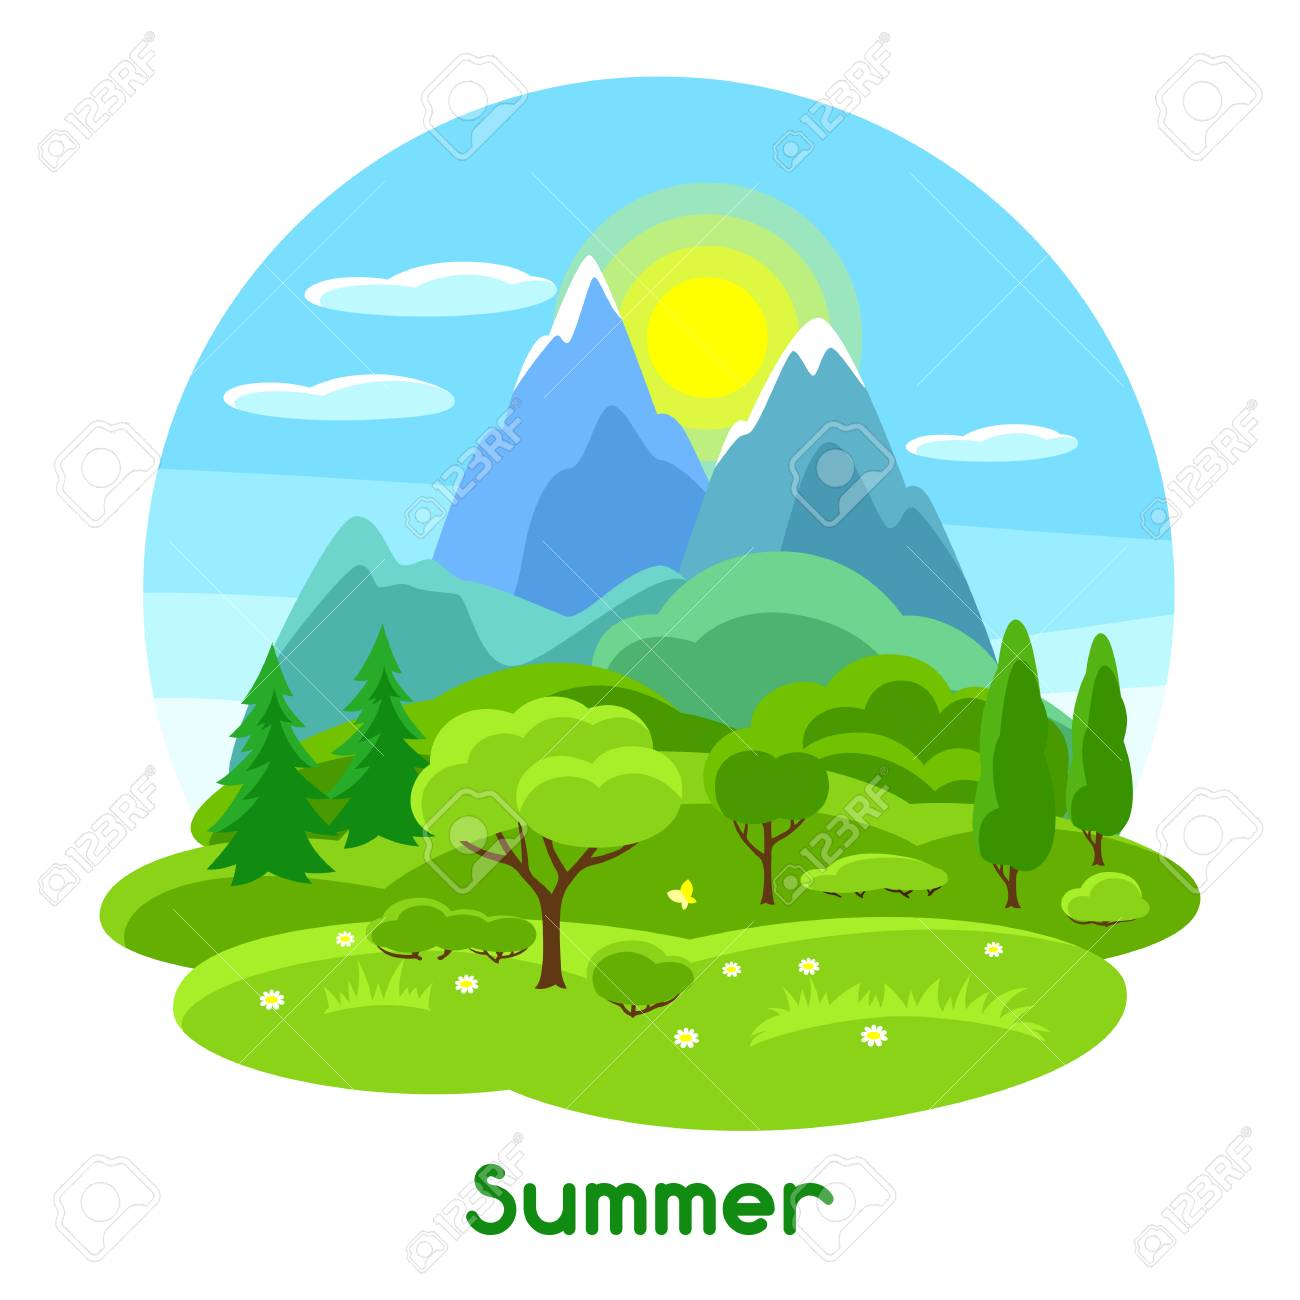 summer landscape with trees mountains and hills seasonal rh 123rf com